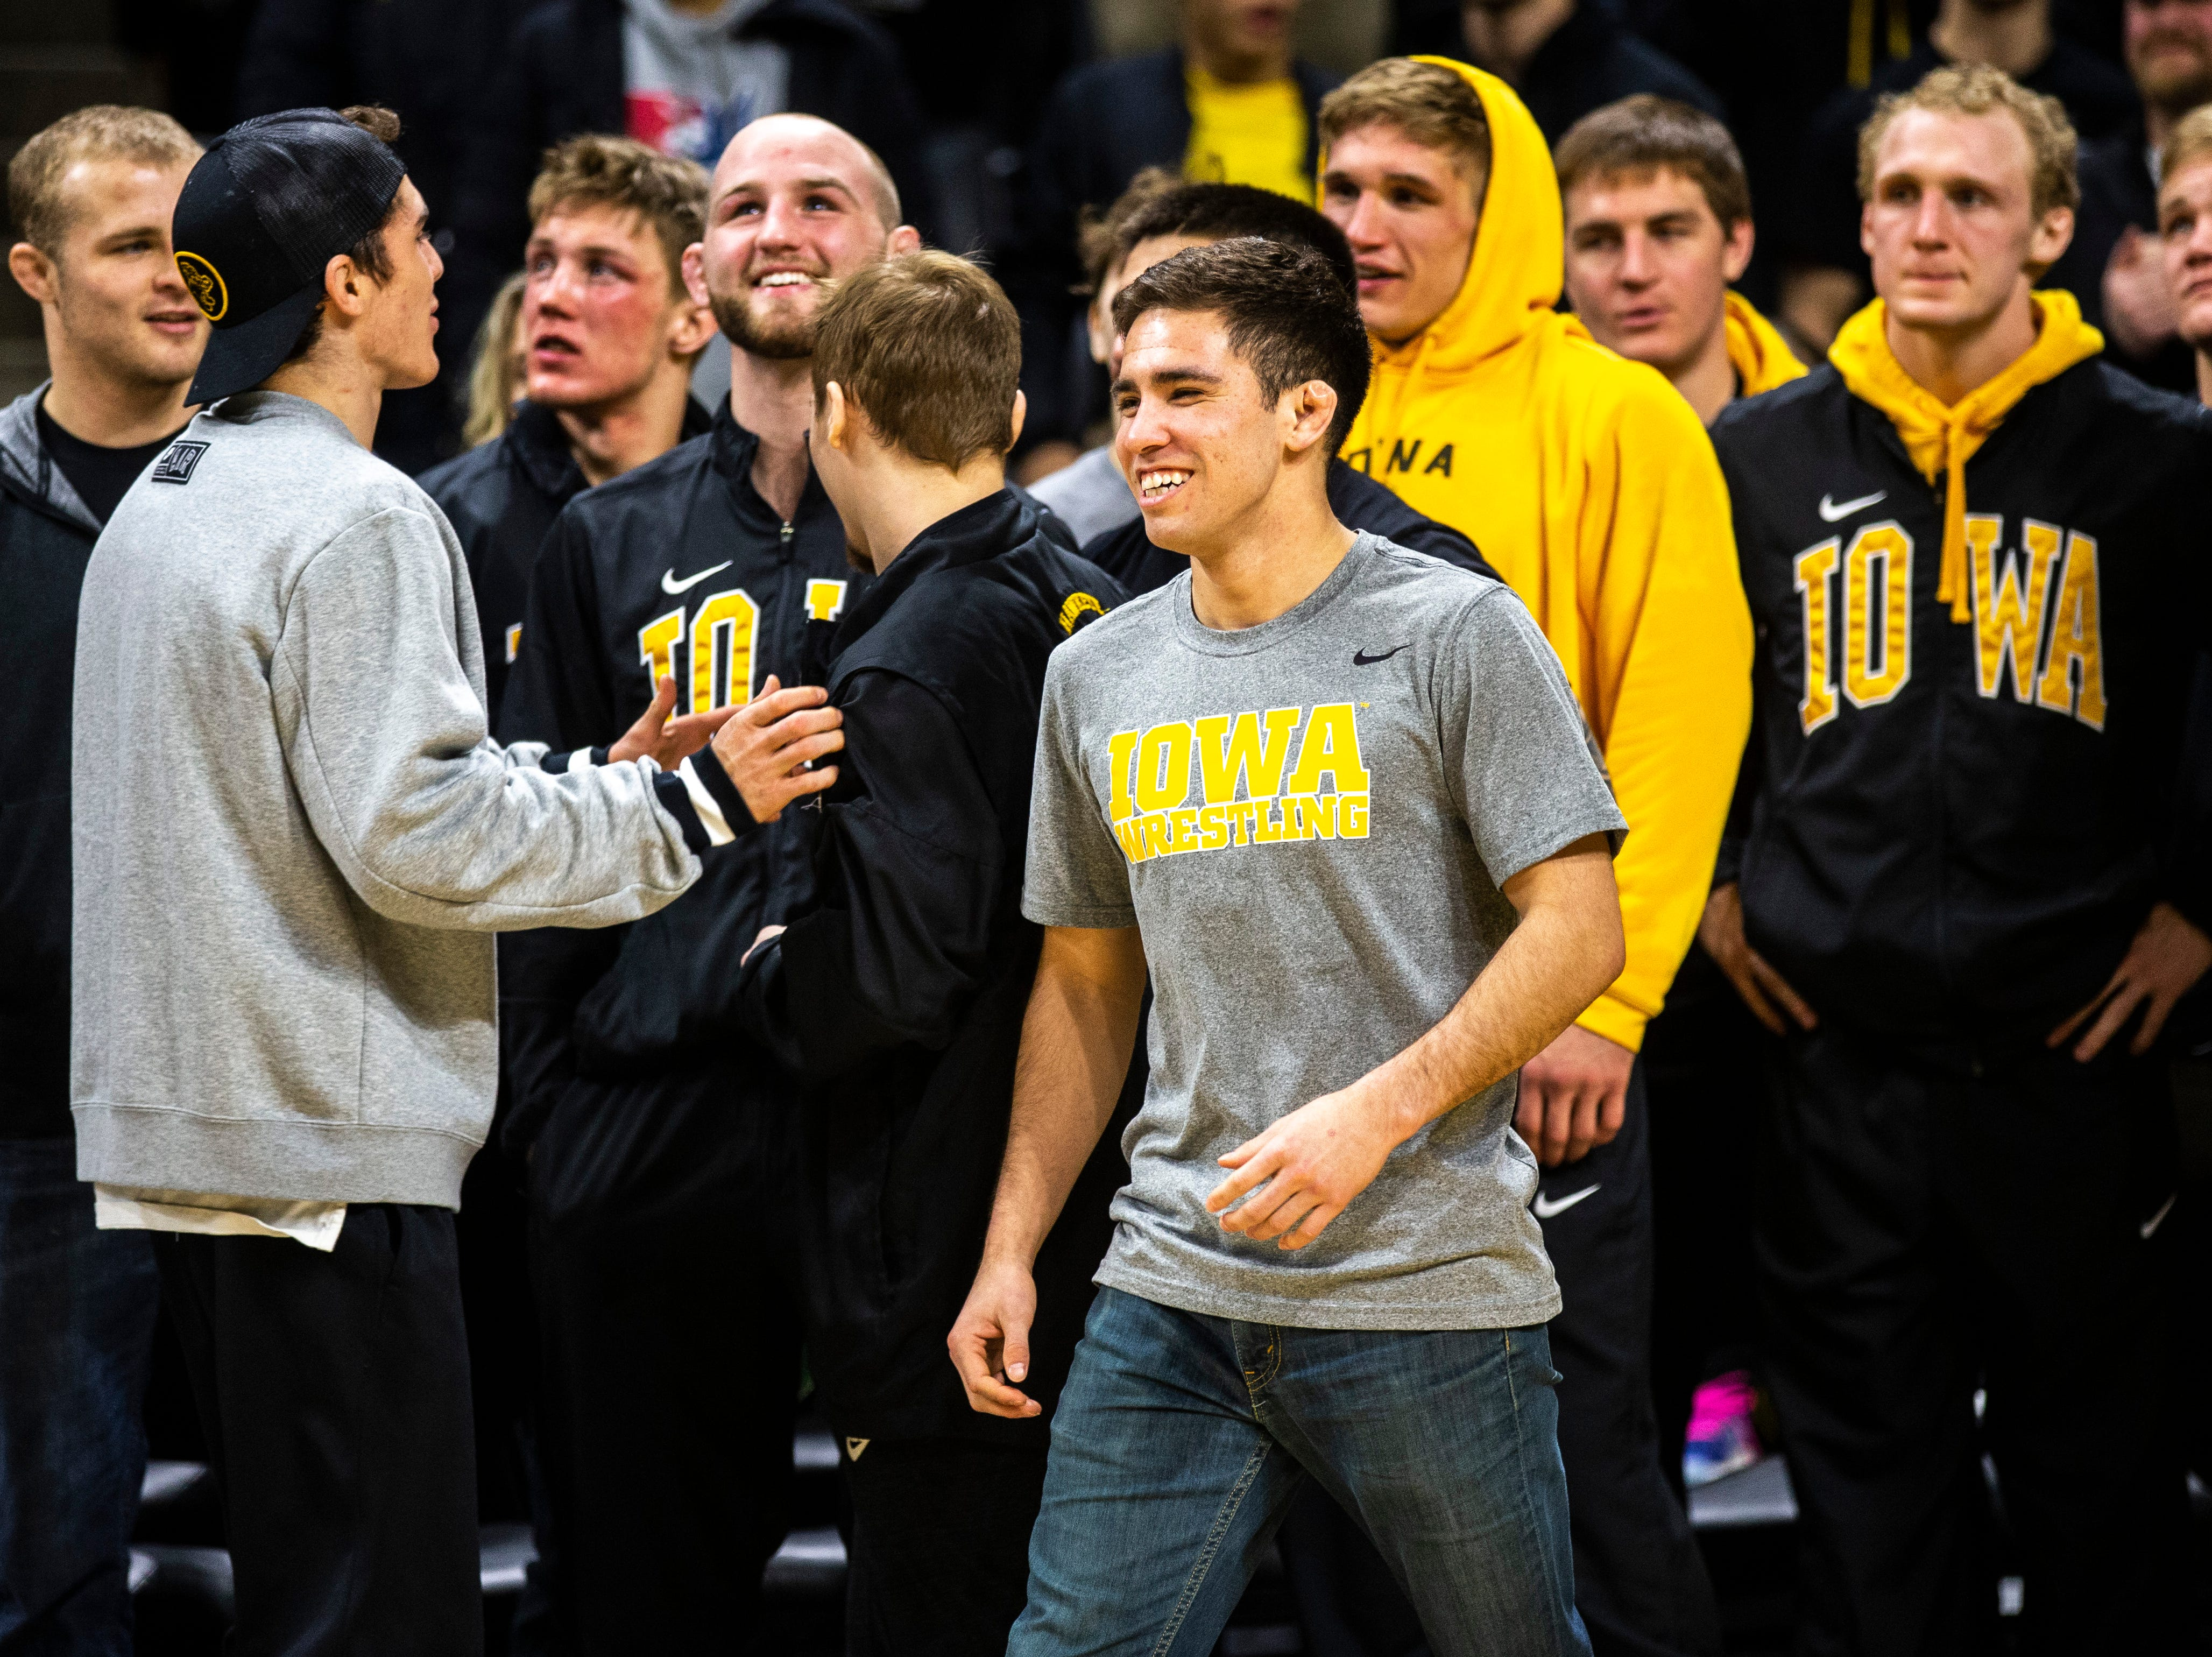 Iowa senior 125-pounder Perez Perez is acknowledged during a NCAA Big Ten Conference wrestling dual on Friday, Feb. 15, 2019 at Carver-Hawkeye Arena in Iowa City, Iowa.